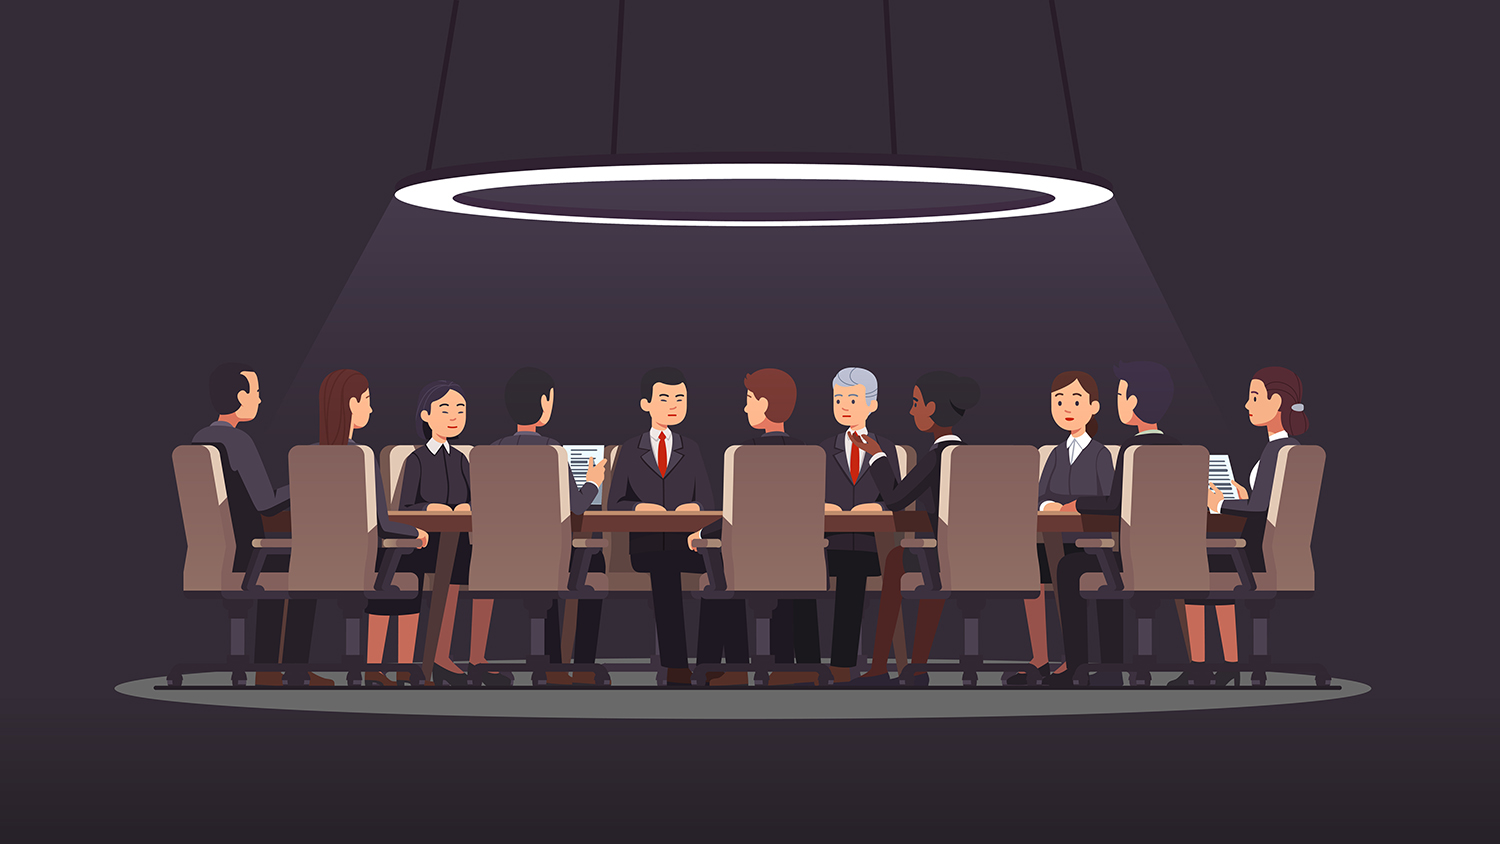 Strategies for being effective in committees